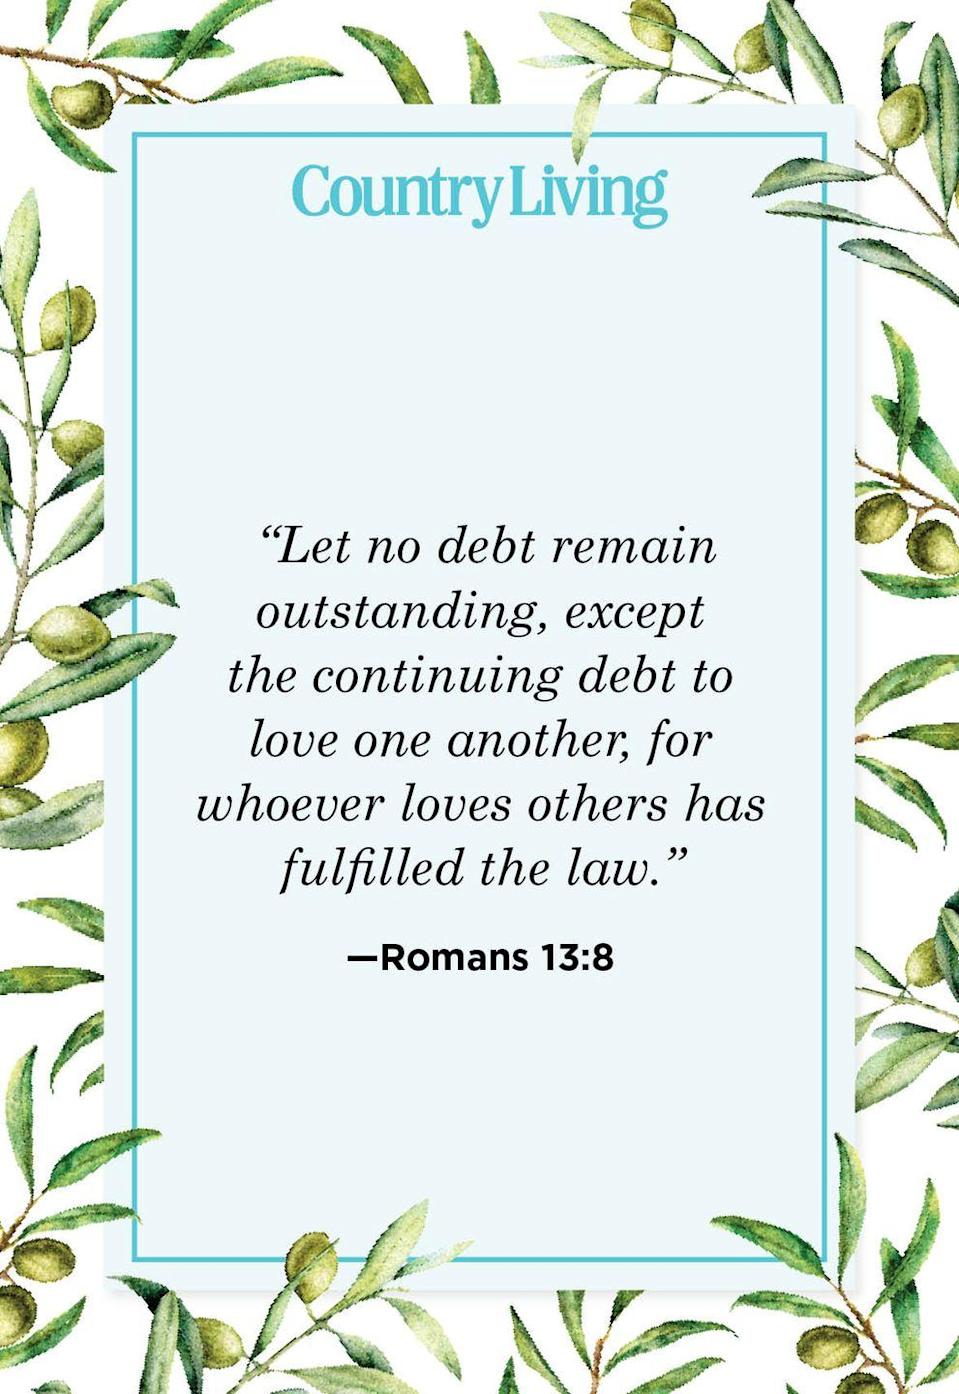 """<p>""""Let no debt remain outstanding, except the continuing debt to love one another, for whoever loves others has fulfilled the law.""""</p>"""